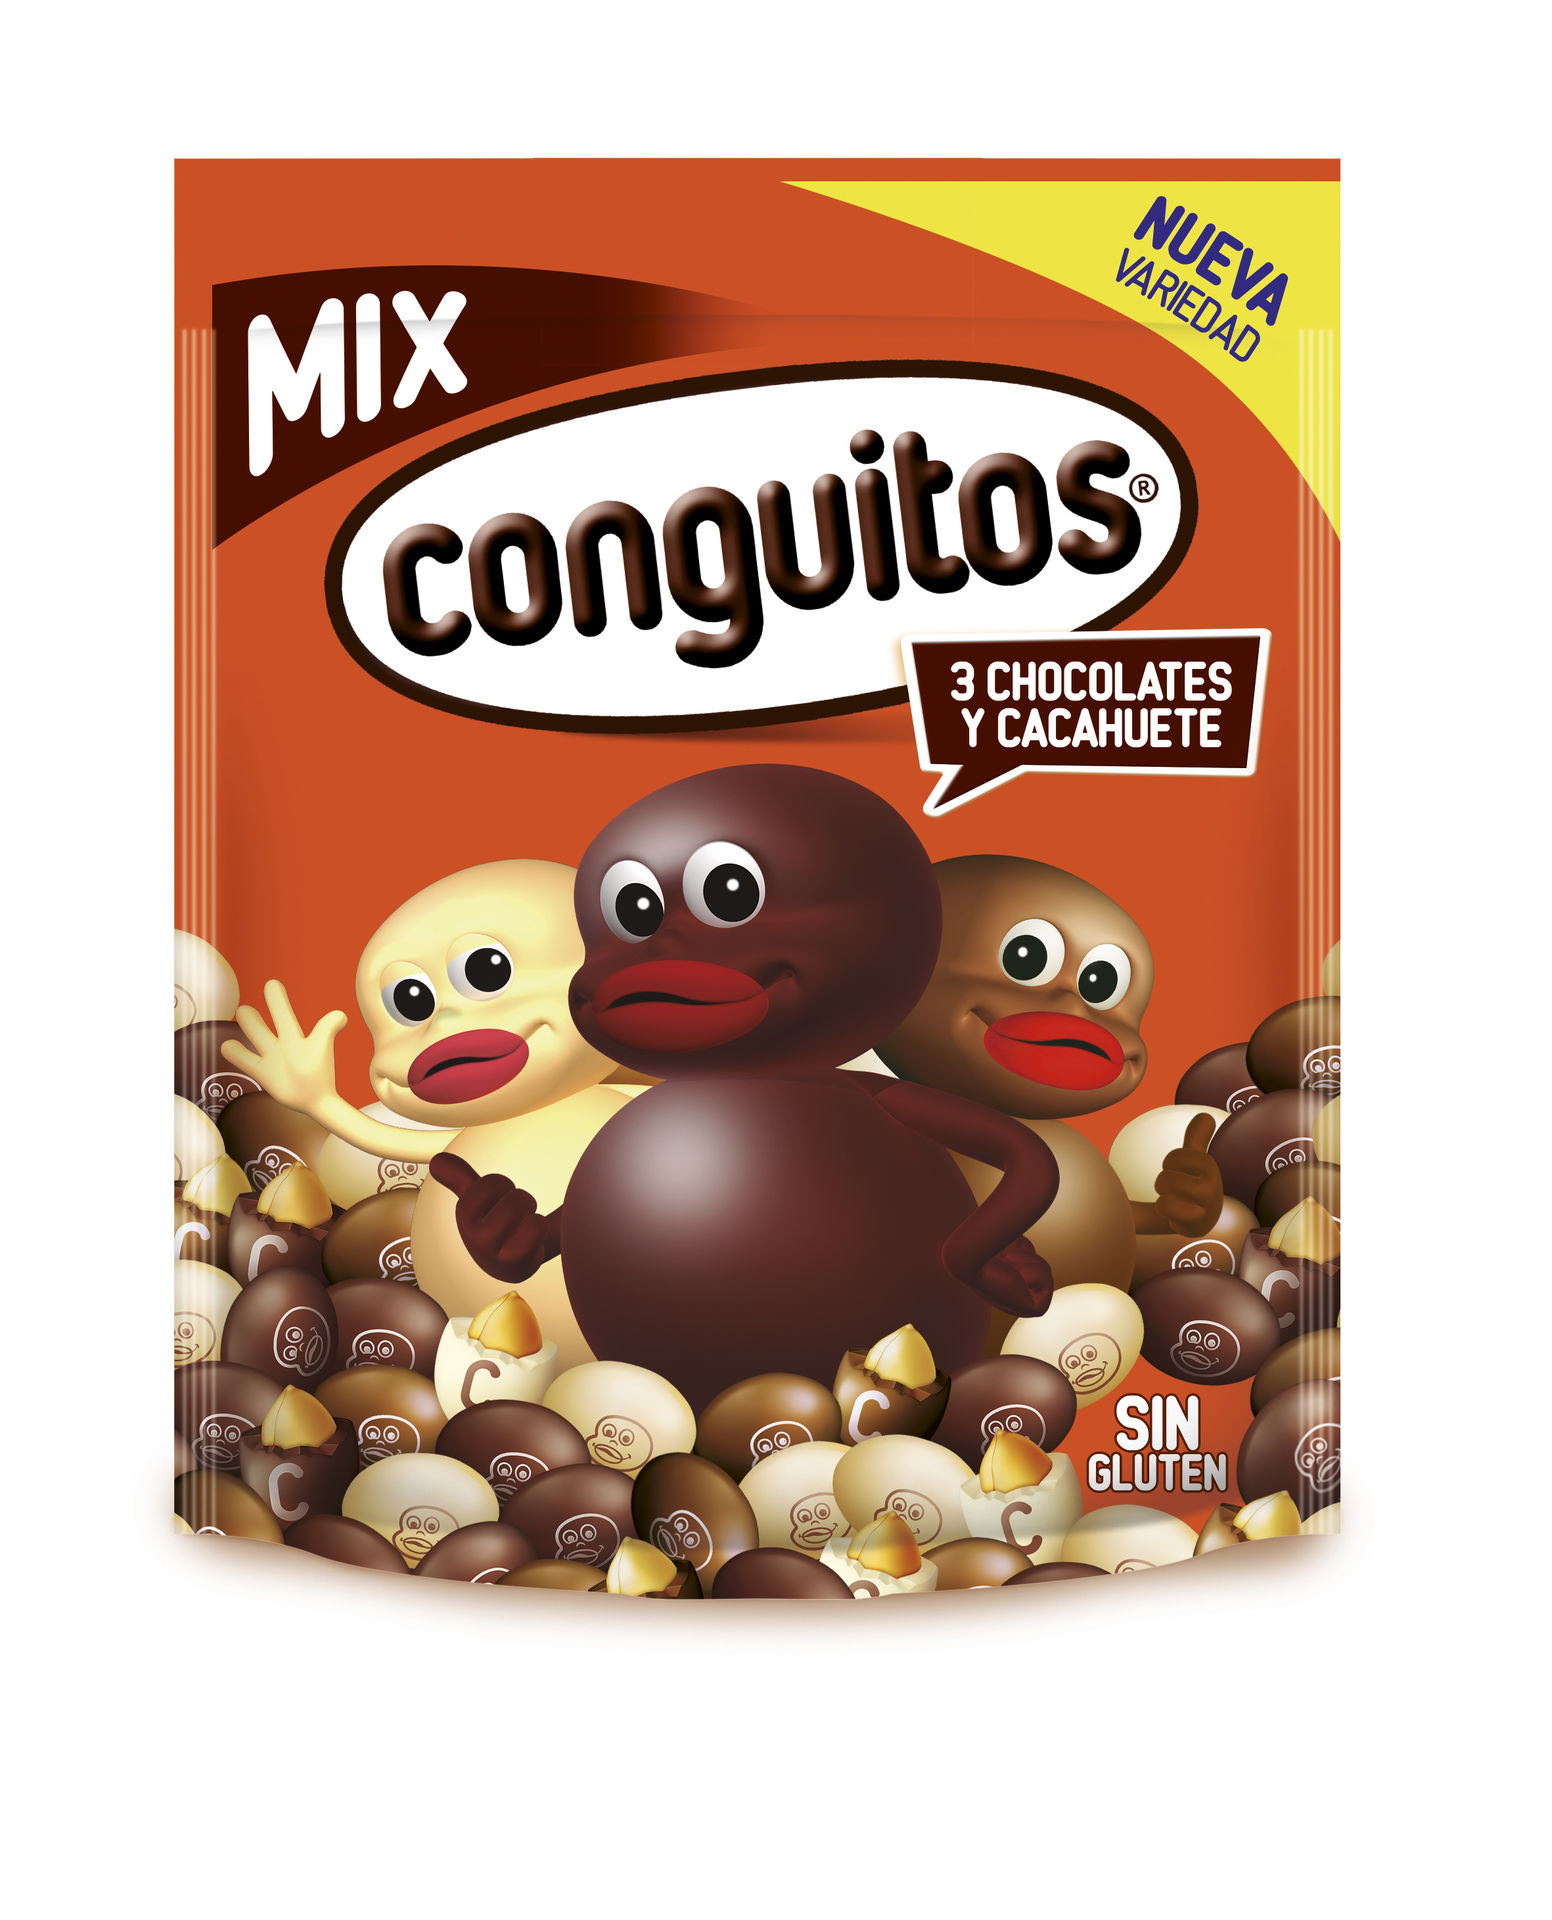 conguitos-mix.jpg